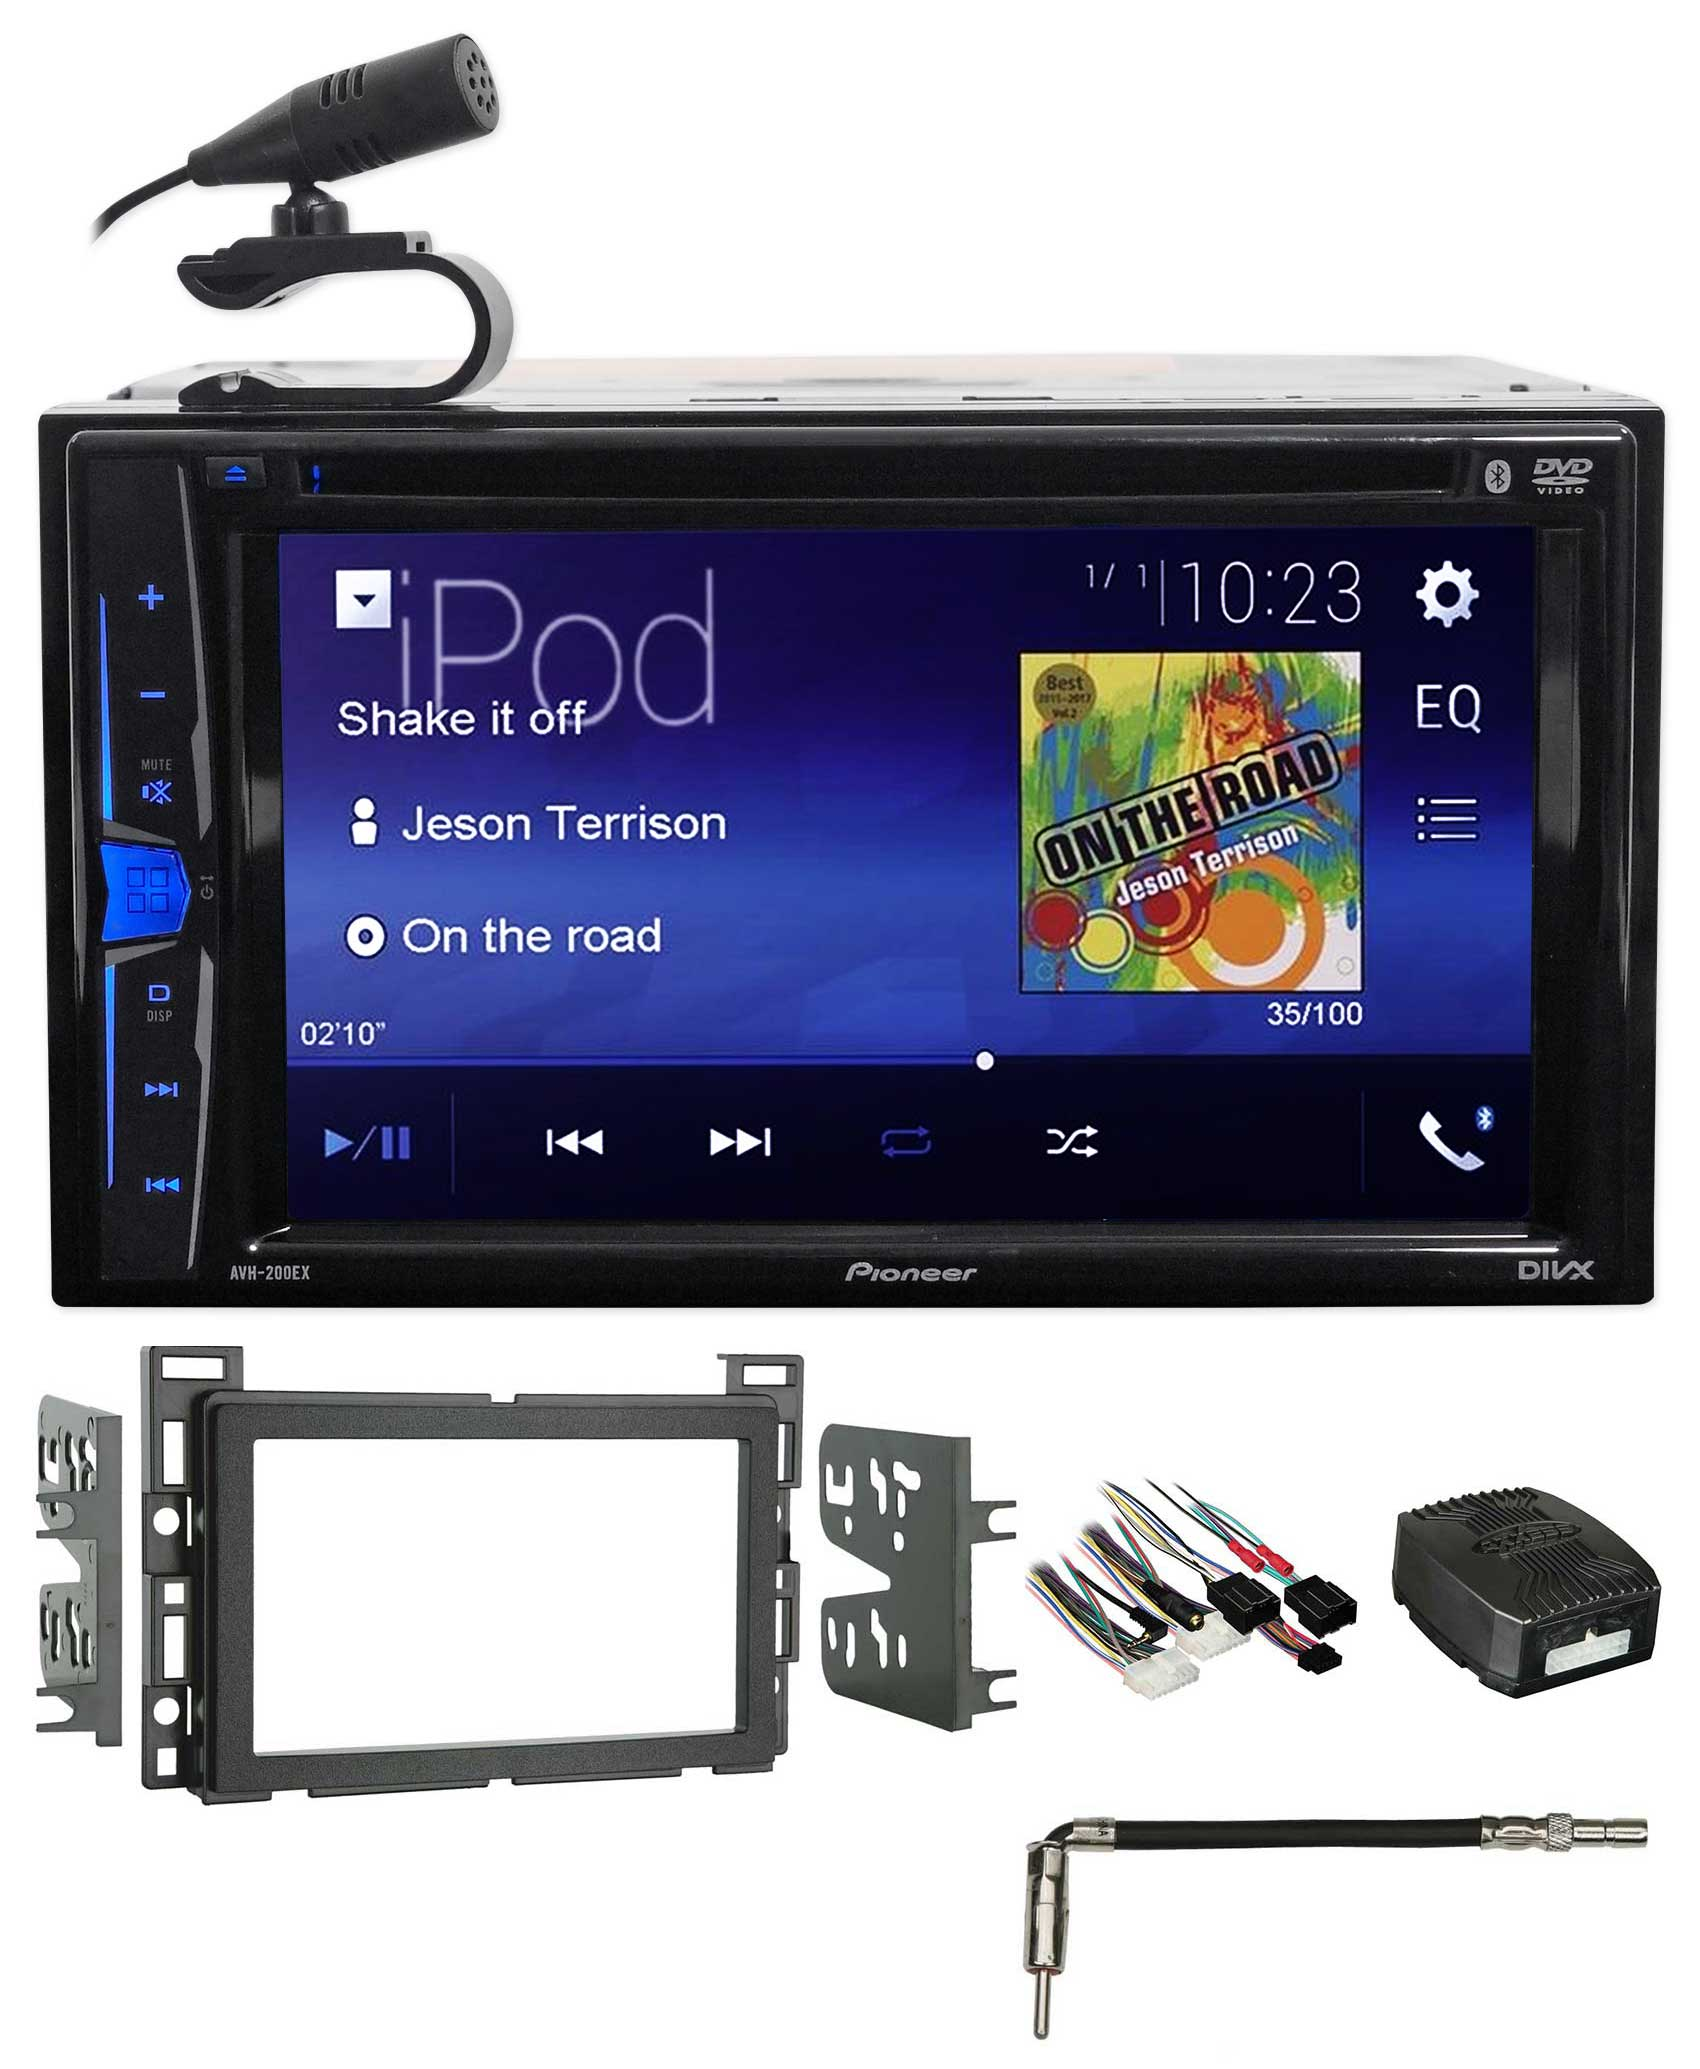 Pioneer DVD Bluetooth Receiver iPhone Android USB For 2008-12 Chevrolet Malibu by Pioneer